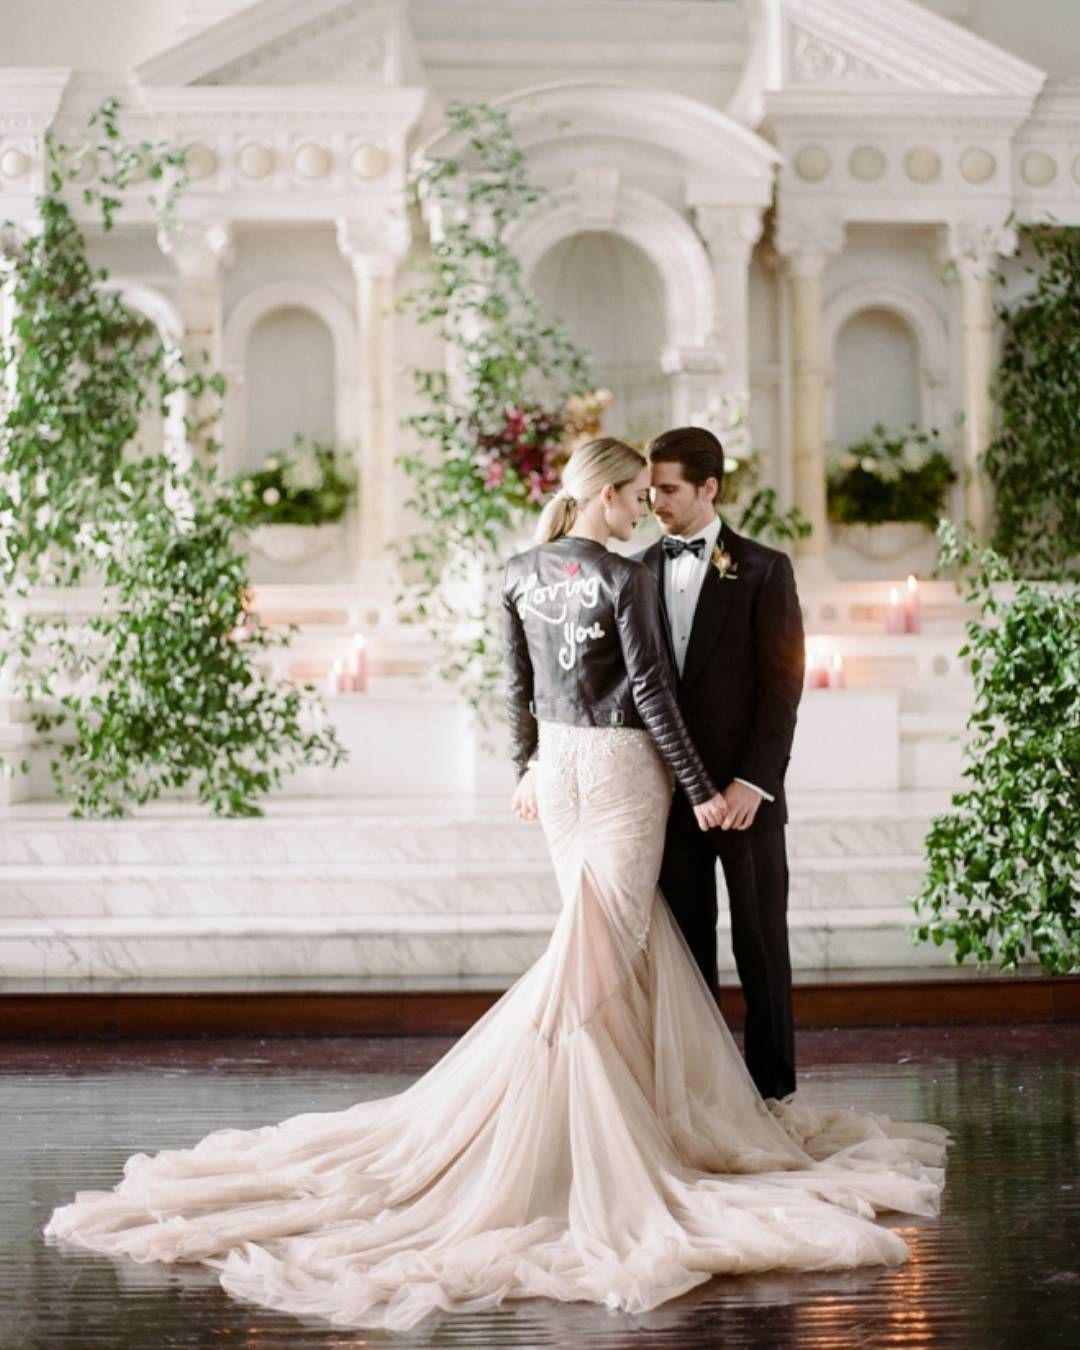 It's official. All the cool brides are wearing leather and lace — just ask @theskinnyconfidential! | Photography: @rebeccayale | Event Planning + Design: @roandcoevents | Floral Design: @emblemflowers | Fashion Styling: @anniecavallo | Wedding Dress: @inbaldrorofficial | Leather Jacket: @aliceandolivia | Bridal Boutique: @panachebeverlyhills | Hair + Makeup: @suziemoldavon | Furniture Rentals: @foundrentals | Tabletop Rentals: @casadeperrin | Venue: @vibianaevents